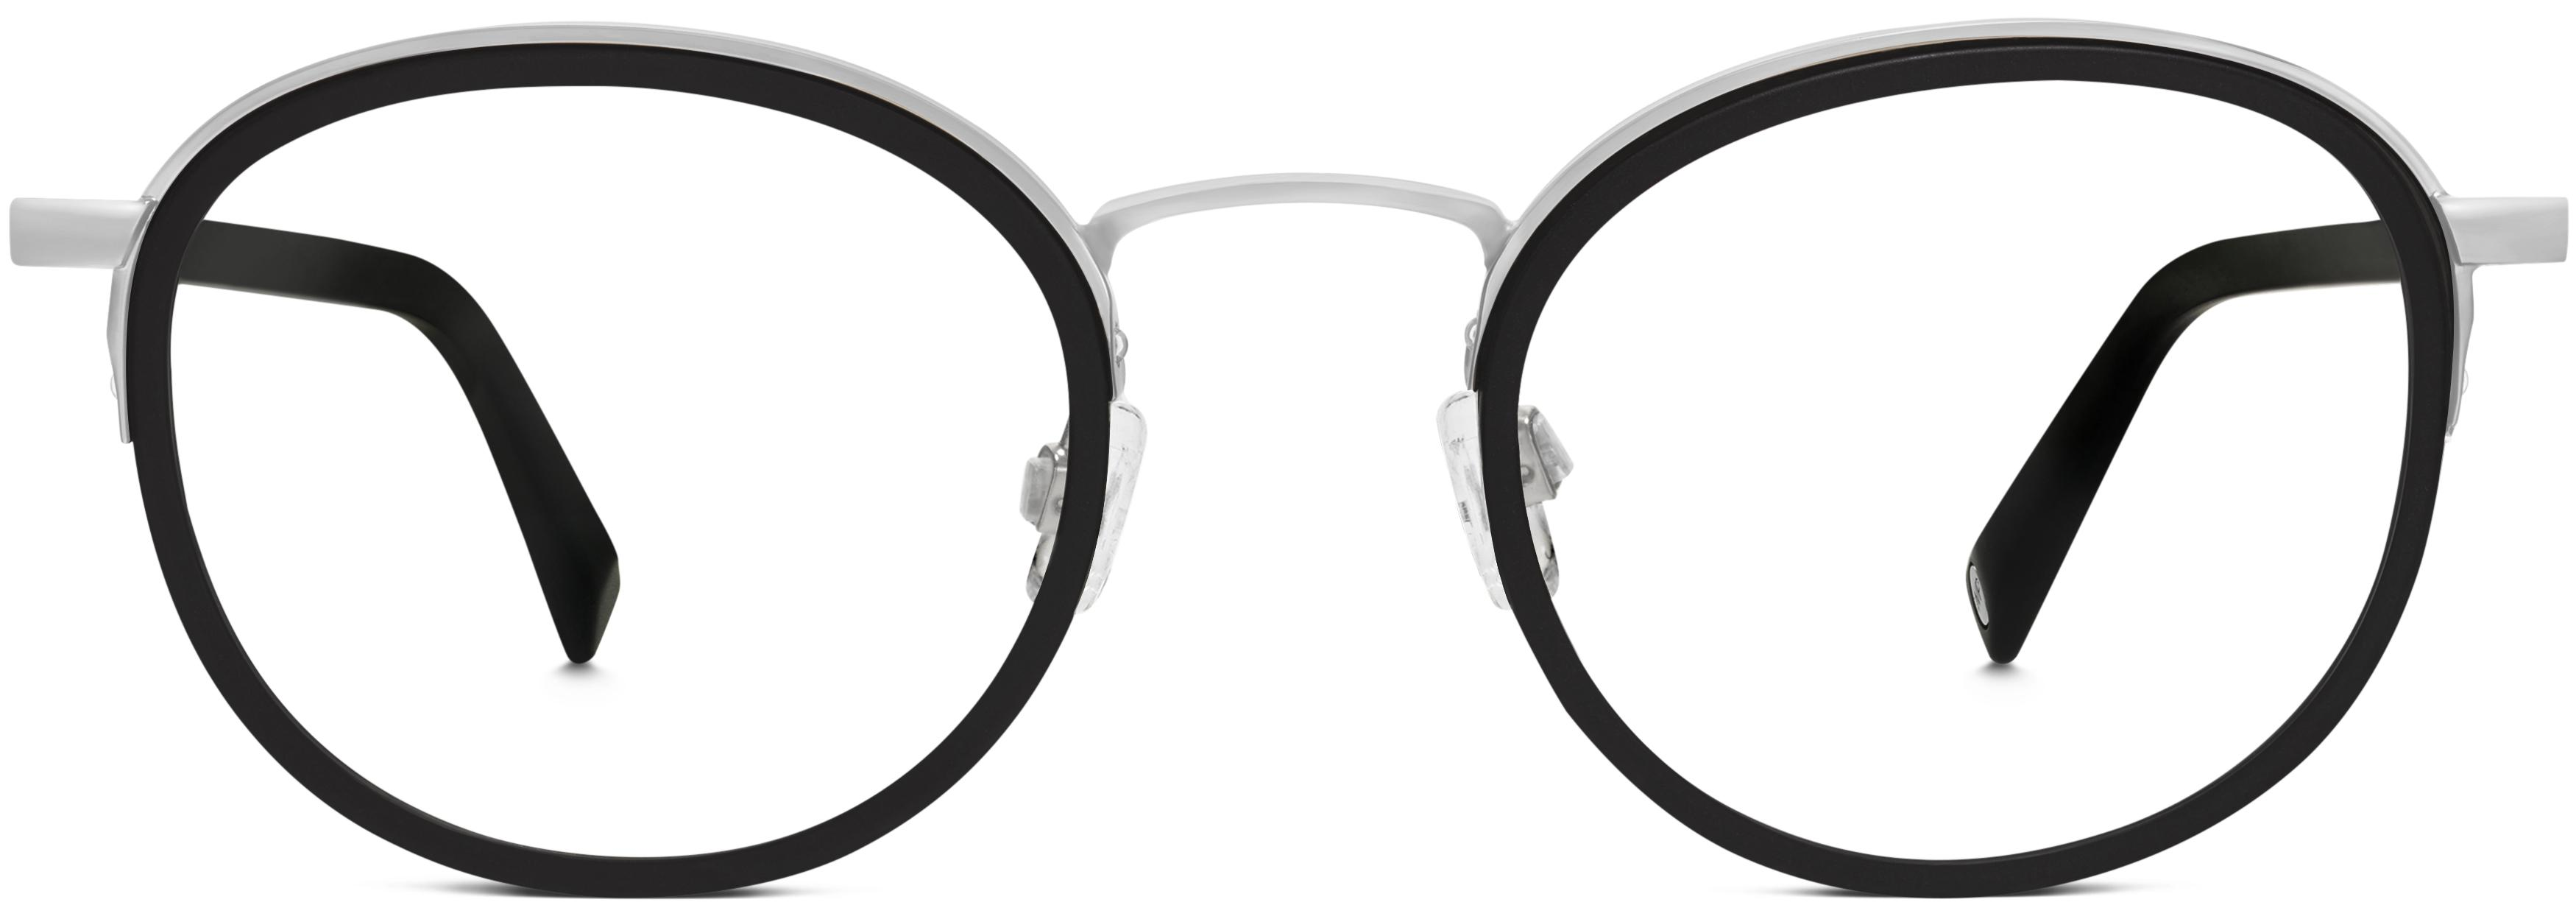 d4f13951d1 Women s Eyeglasses